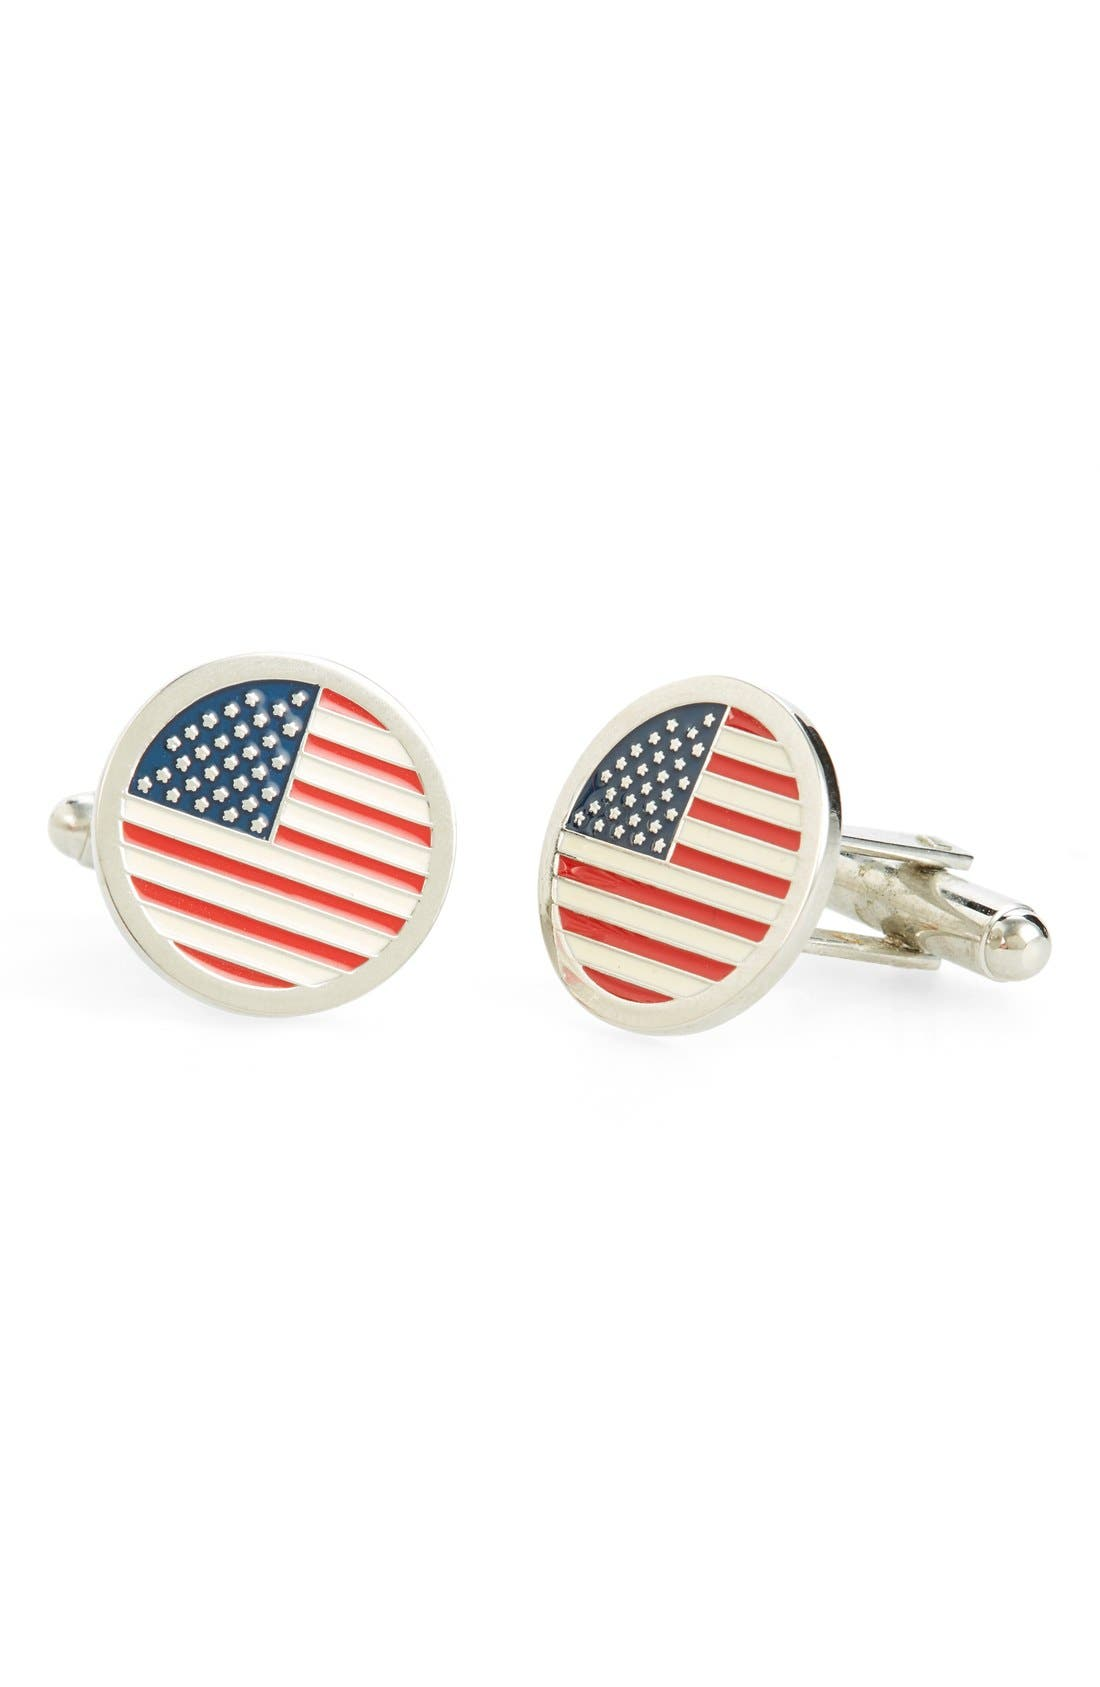 Round American Flag Cuff Links,                             Main thumbnail 1, color,                             640